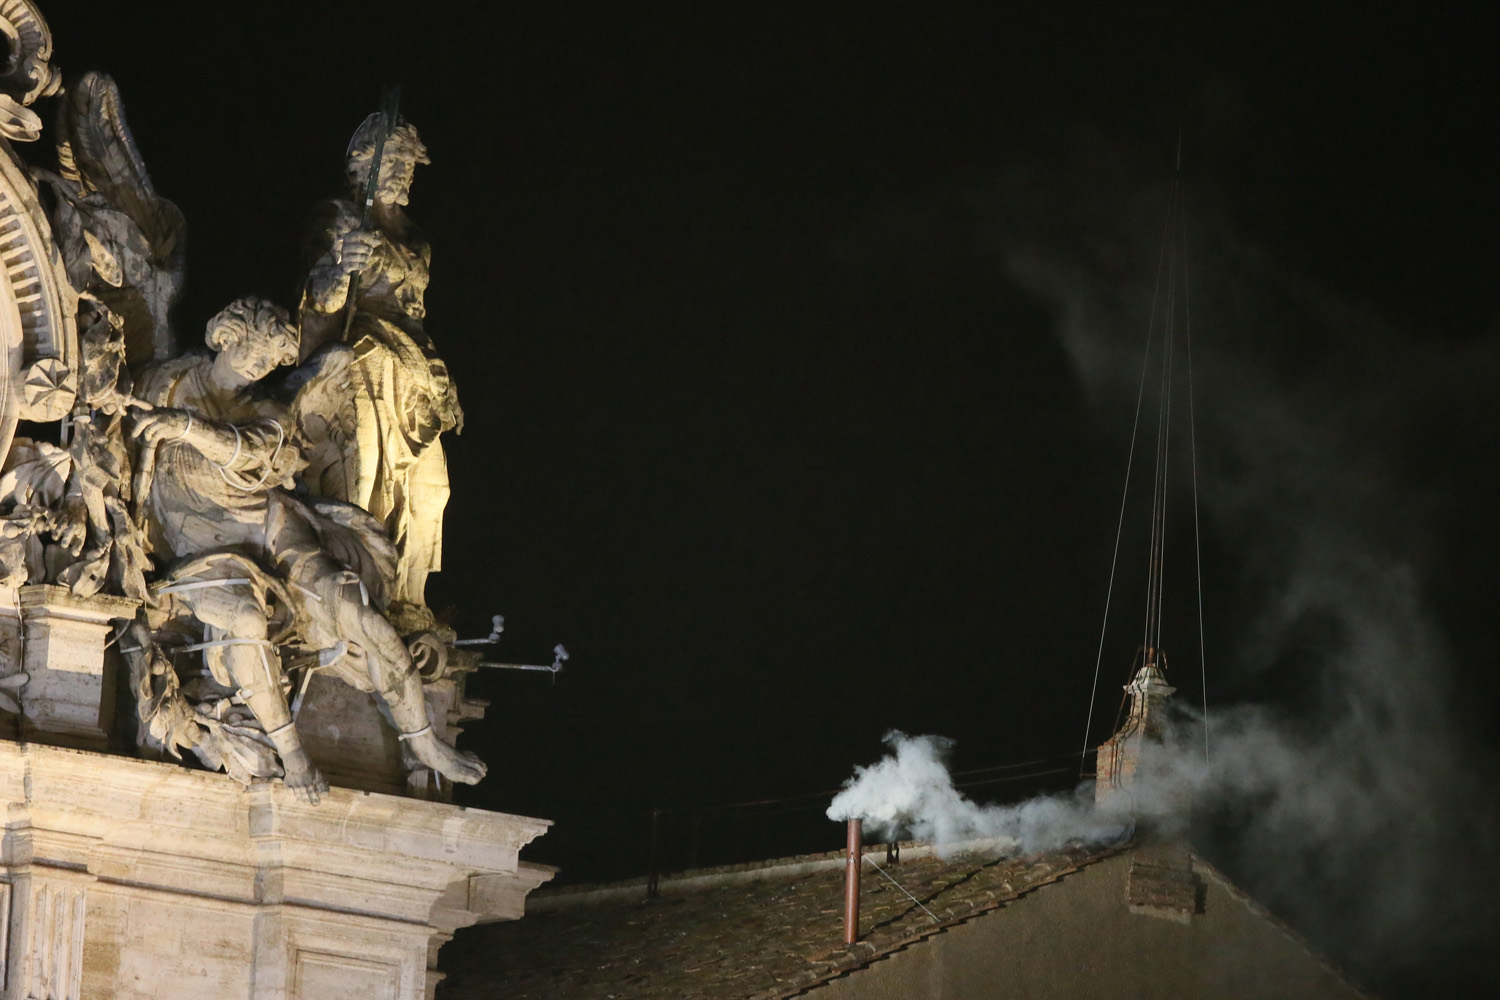 March 13, 2013. White smoke rises from the chimney of the Sistine Chapel in the Vatican indicating that a new Pope has been elected.